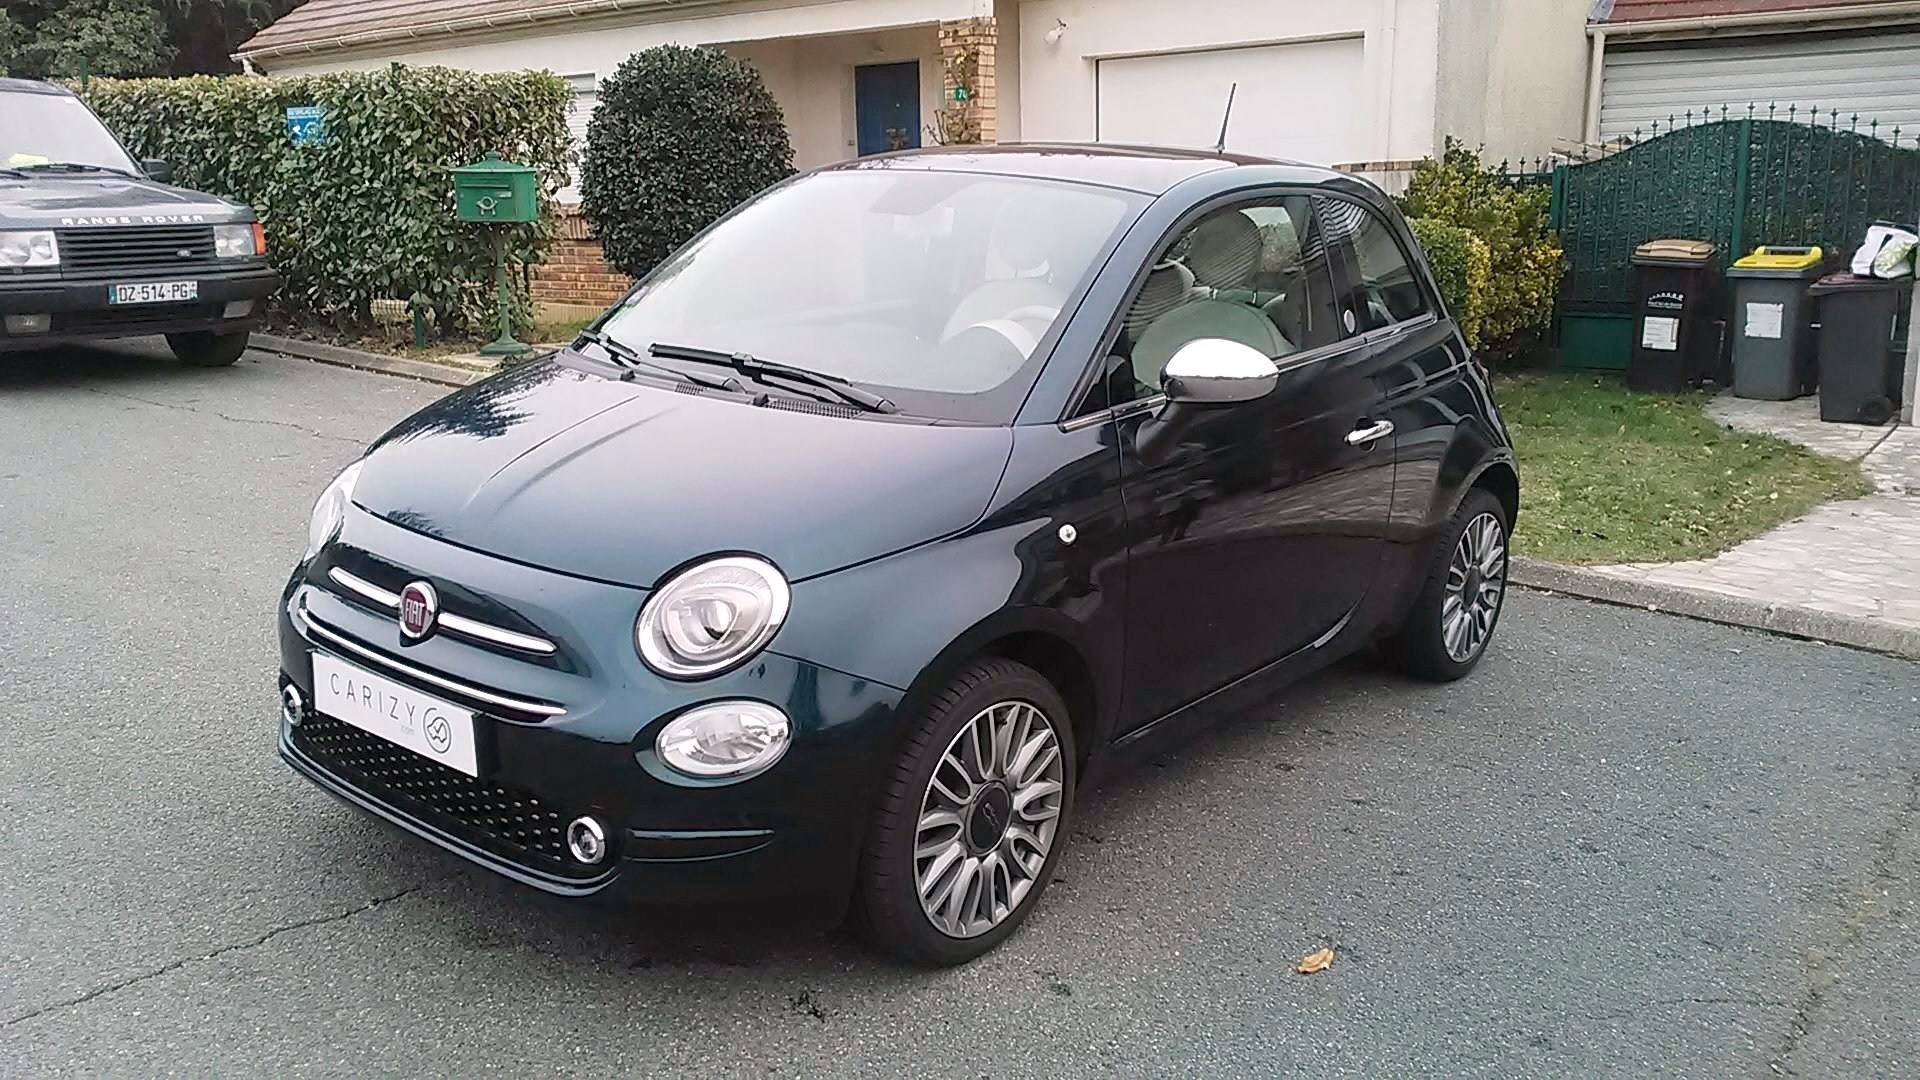 fiat 500 d 39 occasion 1 2 70 club dualogic bva ormesson sur marne carizy. Black Bedroom Furniture Sets. Home Design Ideas